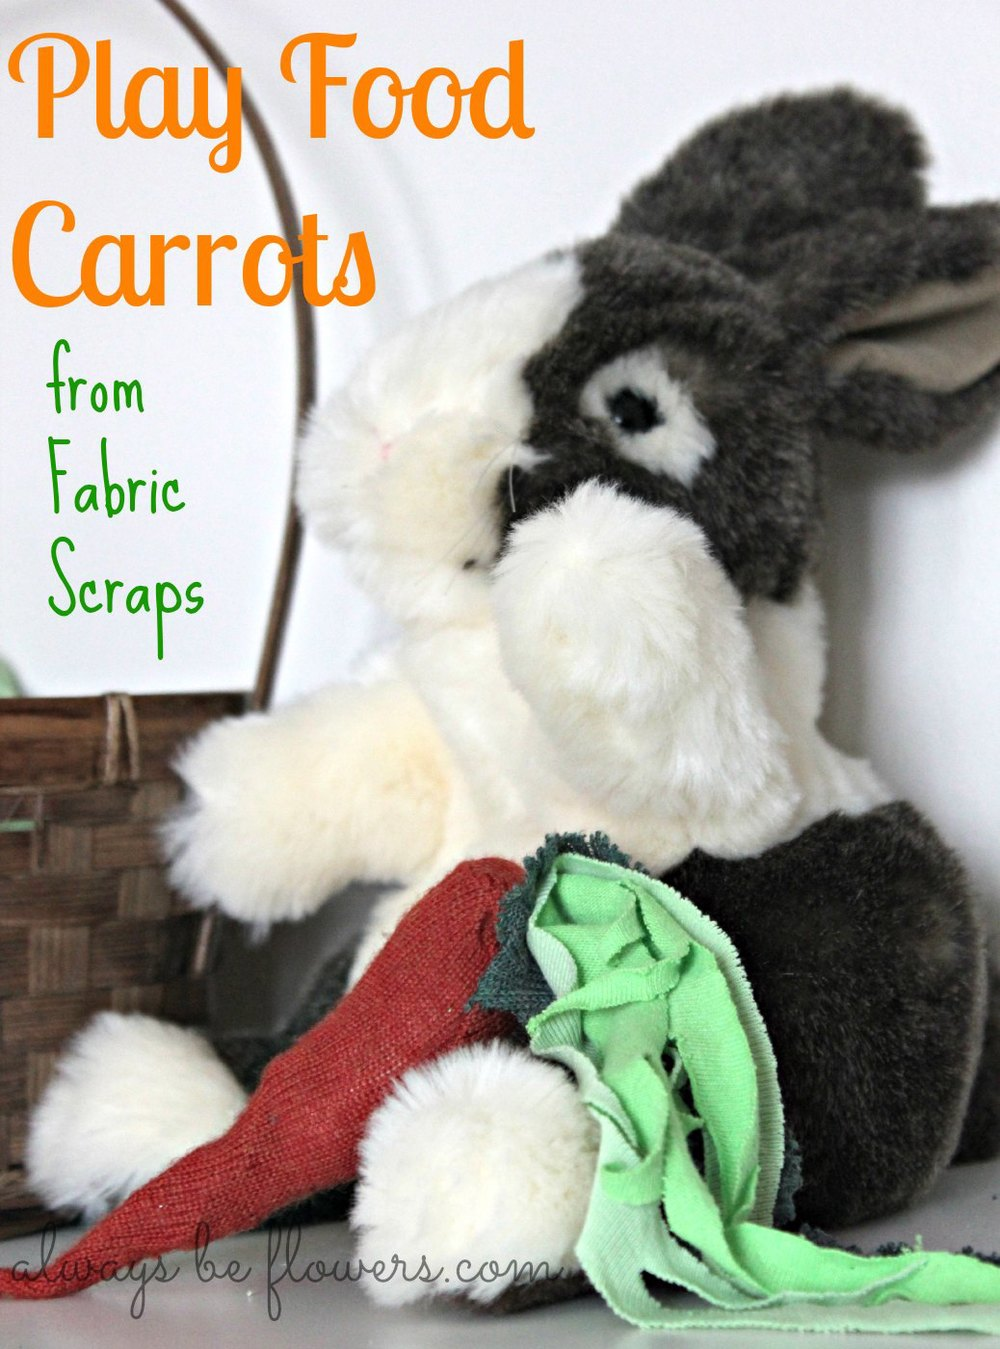 play-food-carrots-fabric-scraps-bunny.jpg